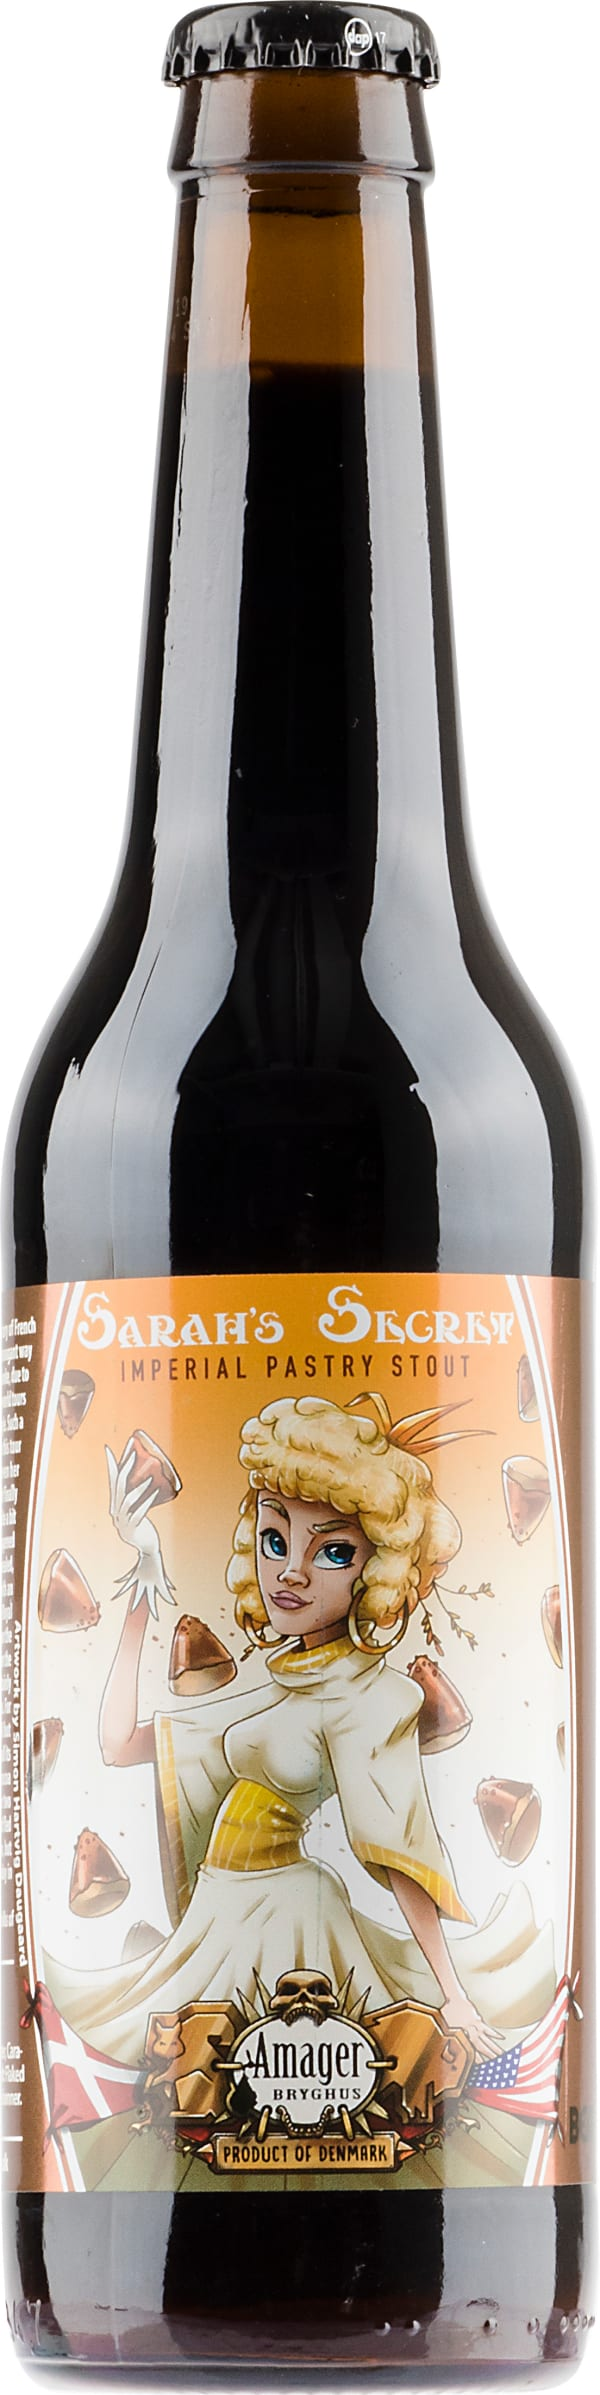 Amager Sarah's Secret Imperial Pastry Stout